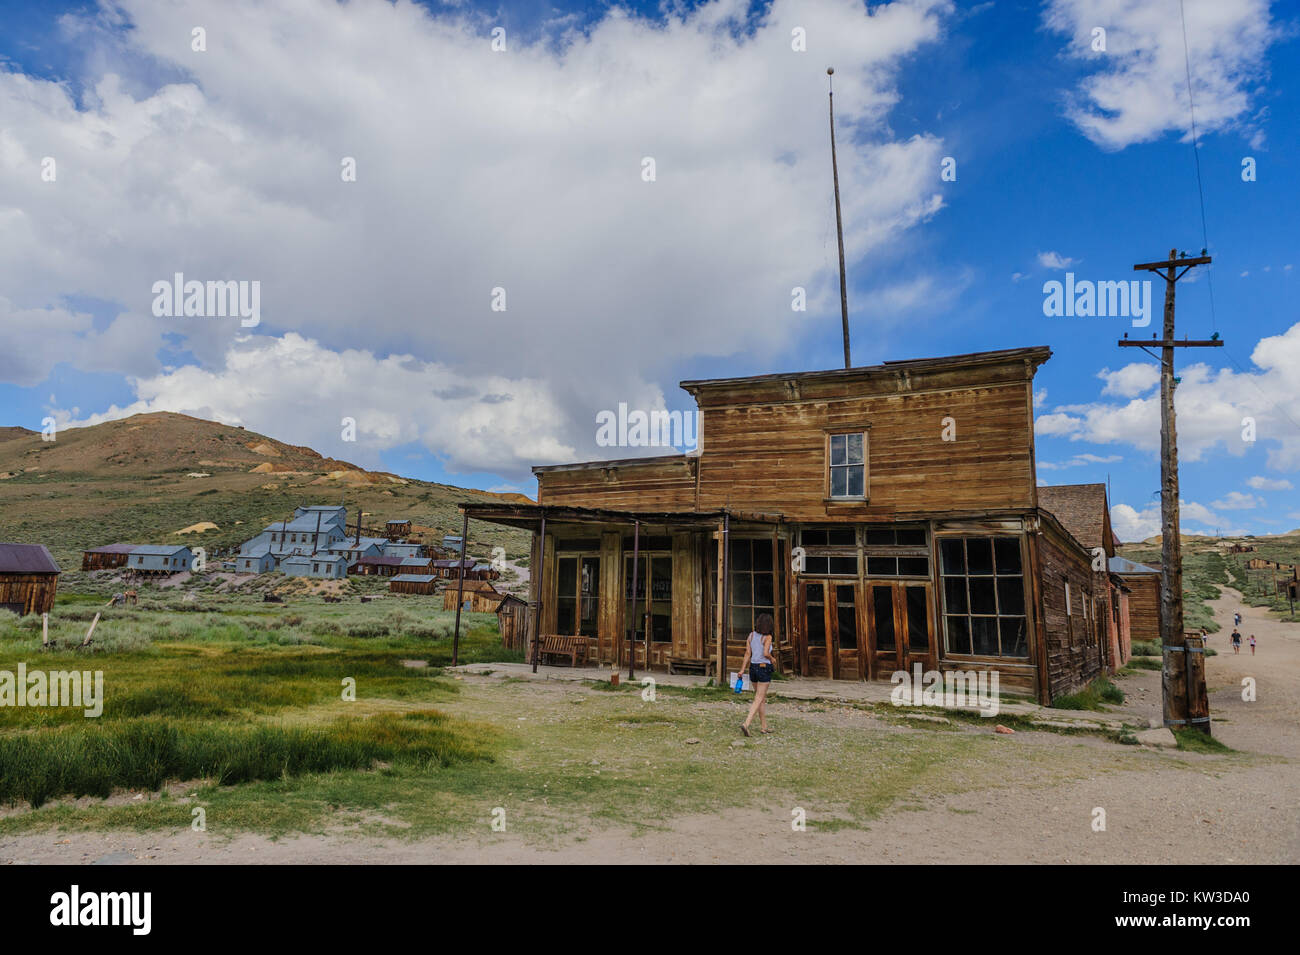 Old Saloon in  Ghost Town - Stock Image